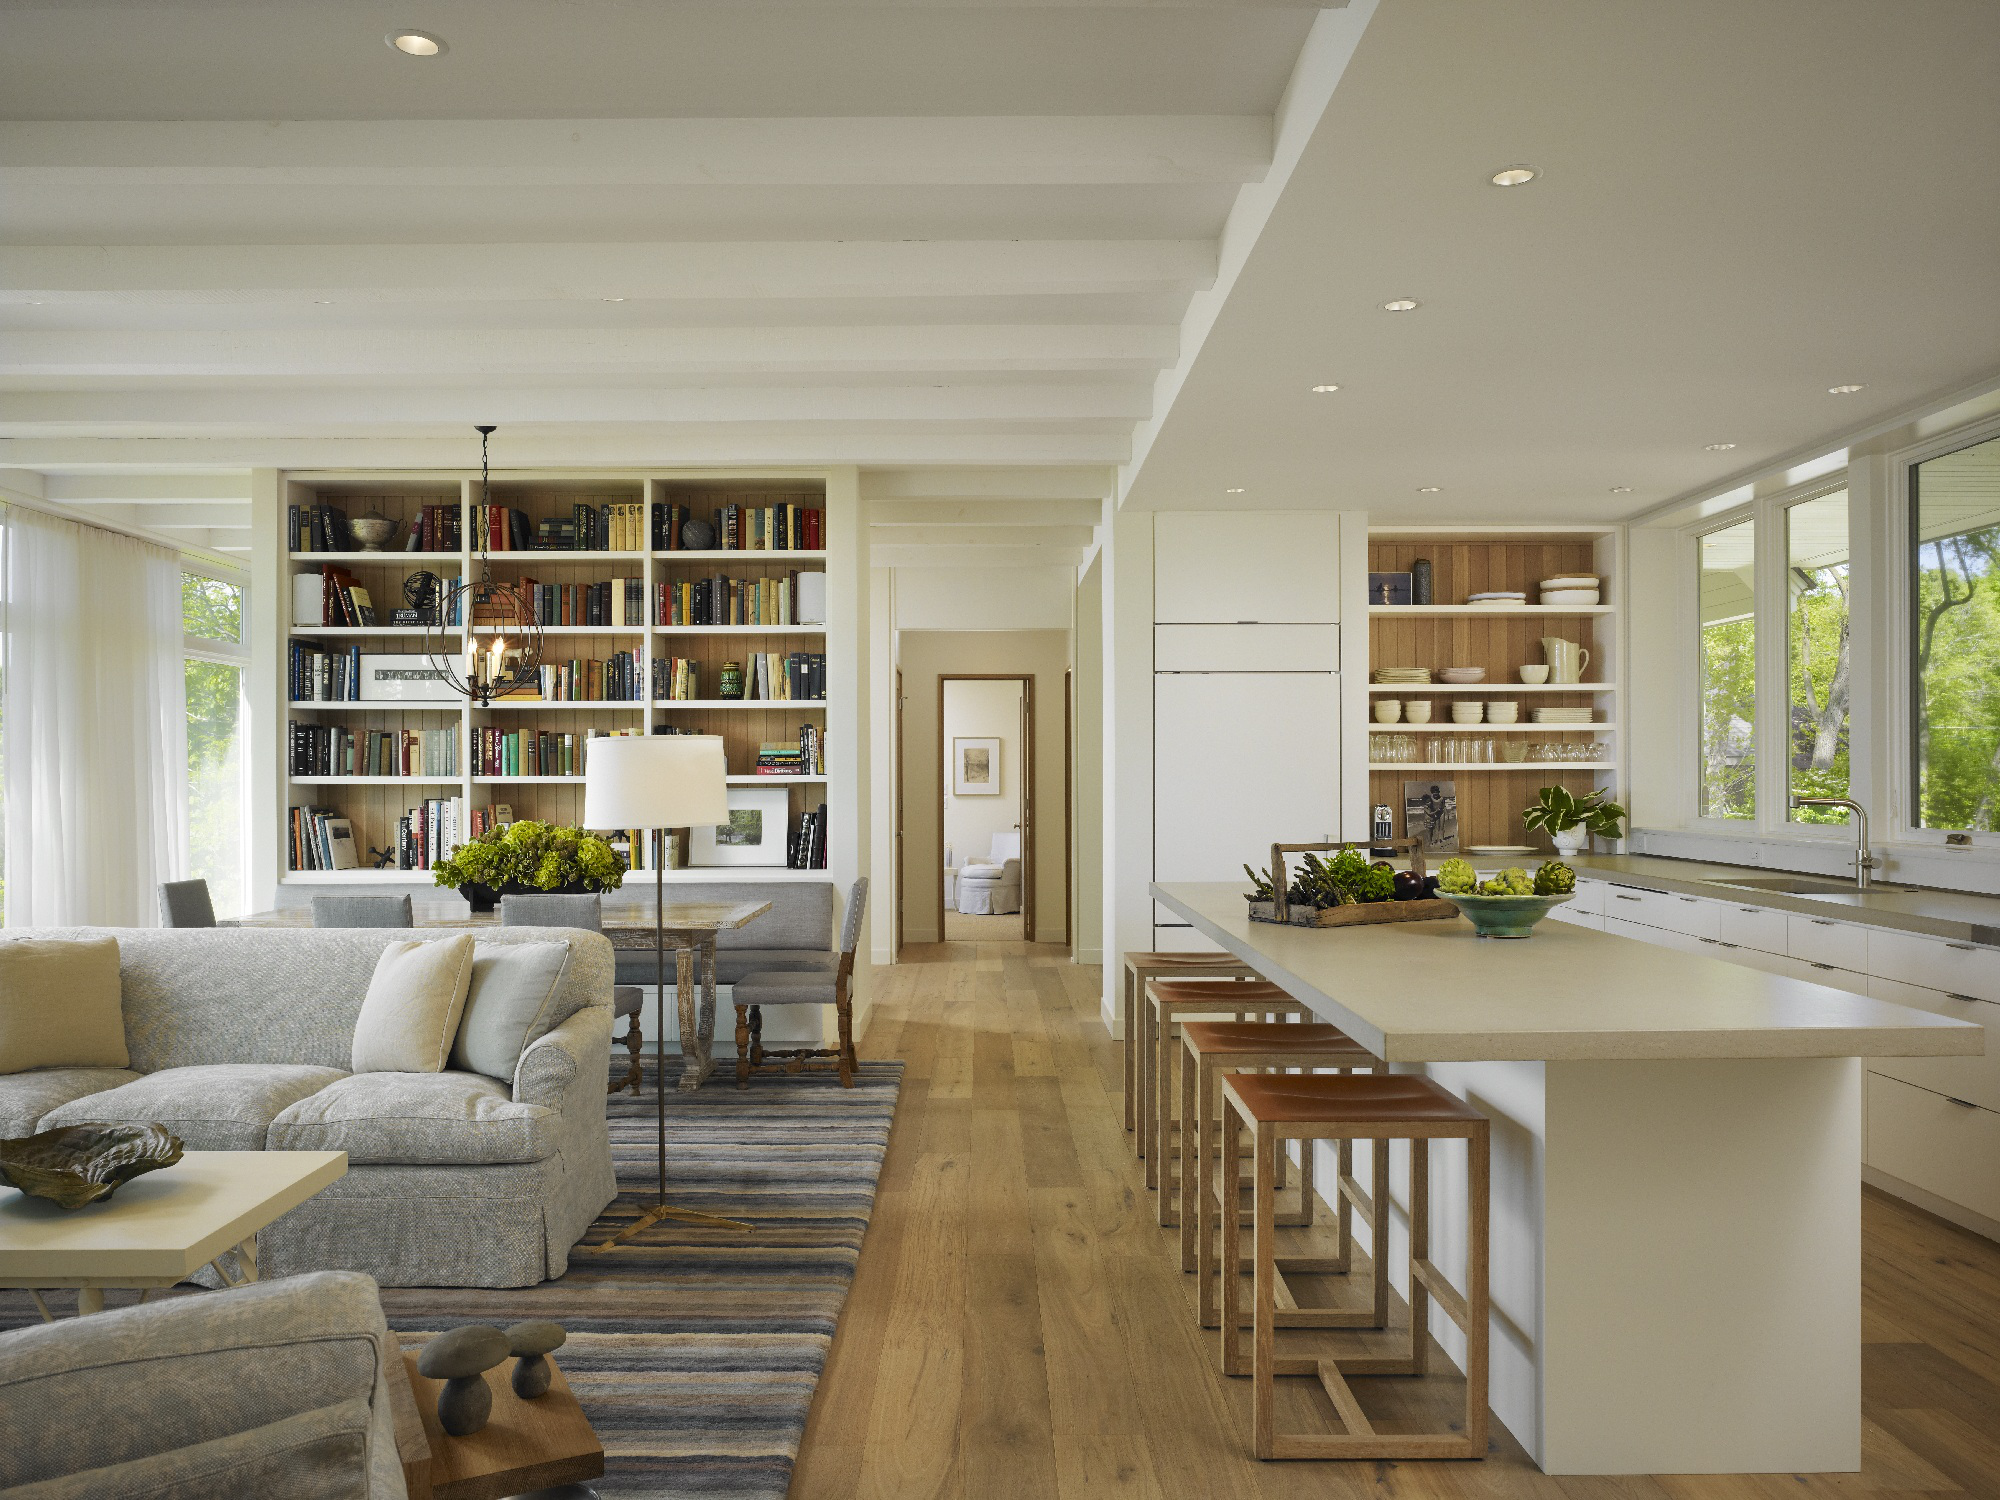 Painted beams, light oak floors and a concrete counter brighten this great room. By Robbins Architecture